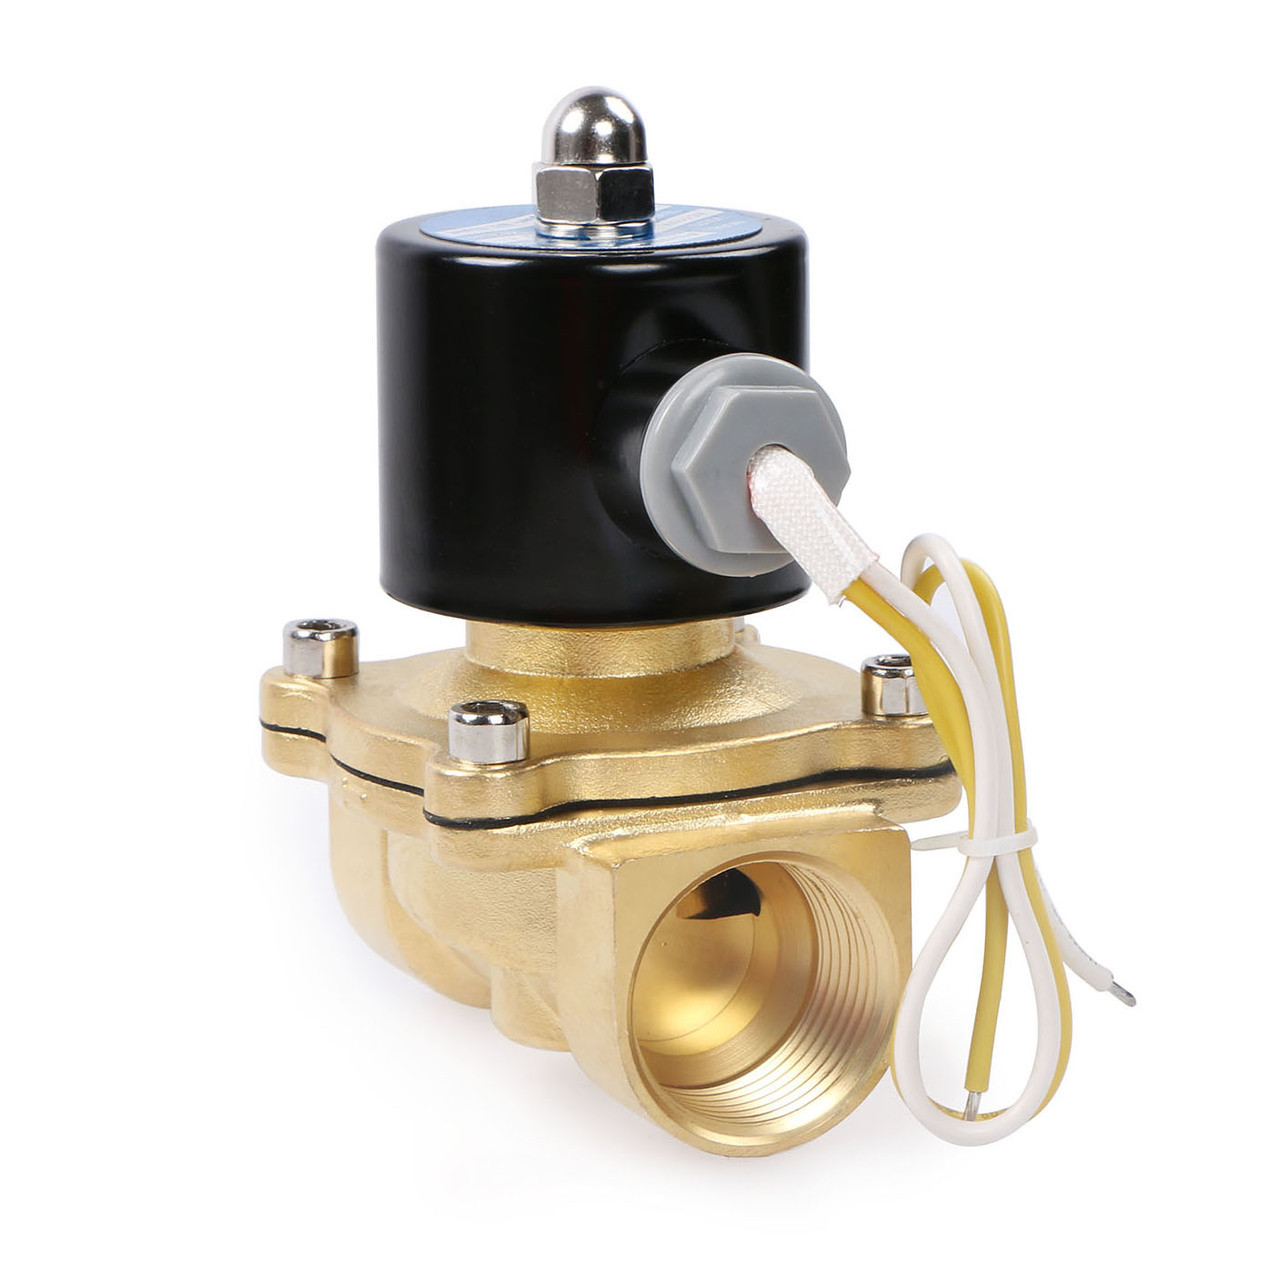 "USSOLID Electric Solenoid Valve- 1"" 110V AC Solenoid Valve Brass Body Normally Closed, NBR SEAL"